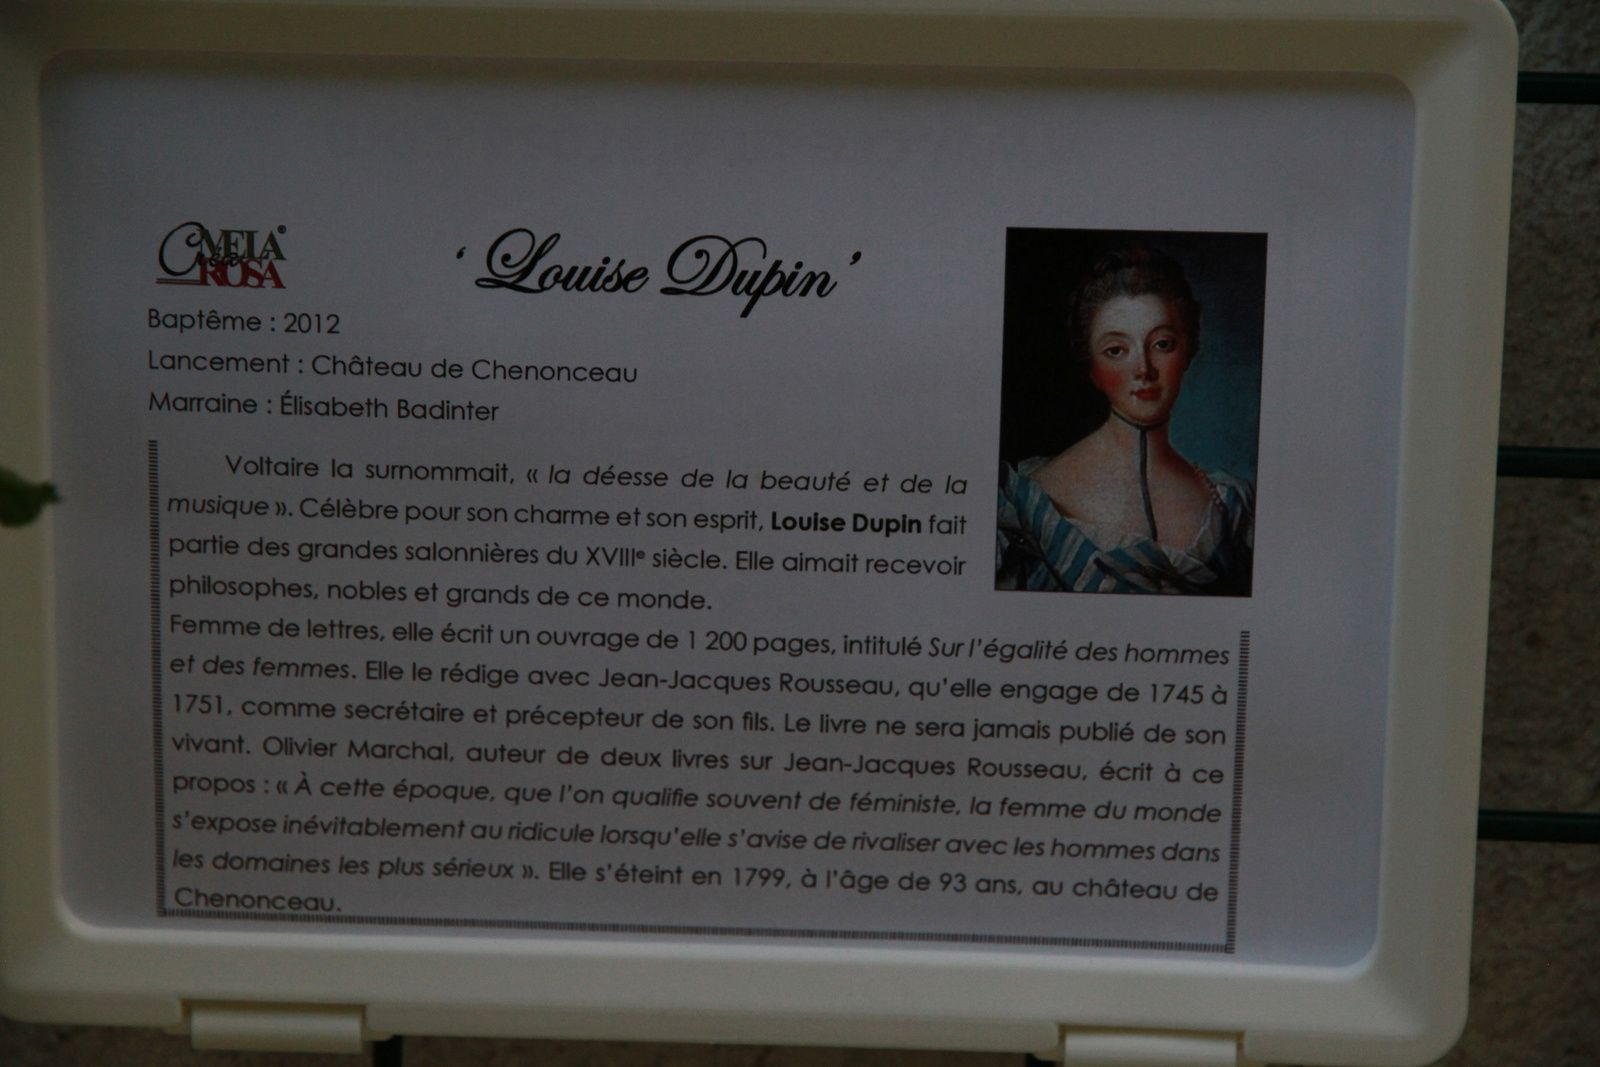 Le rosier 'Louise Dupin'